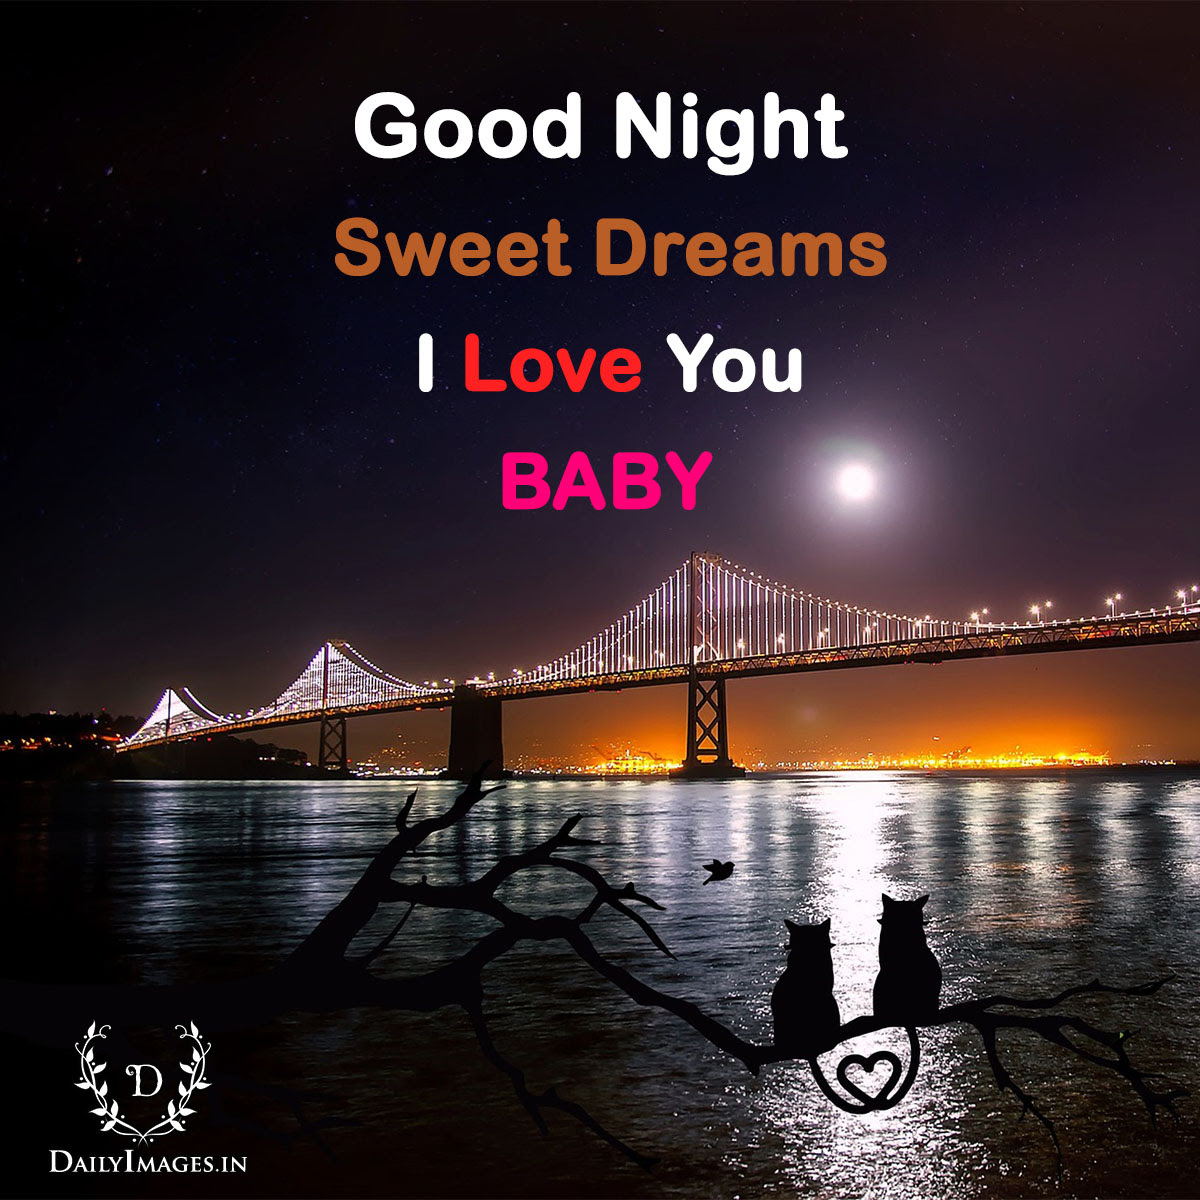 Good Night Sweet Dreams I Love You Baby Daily Images